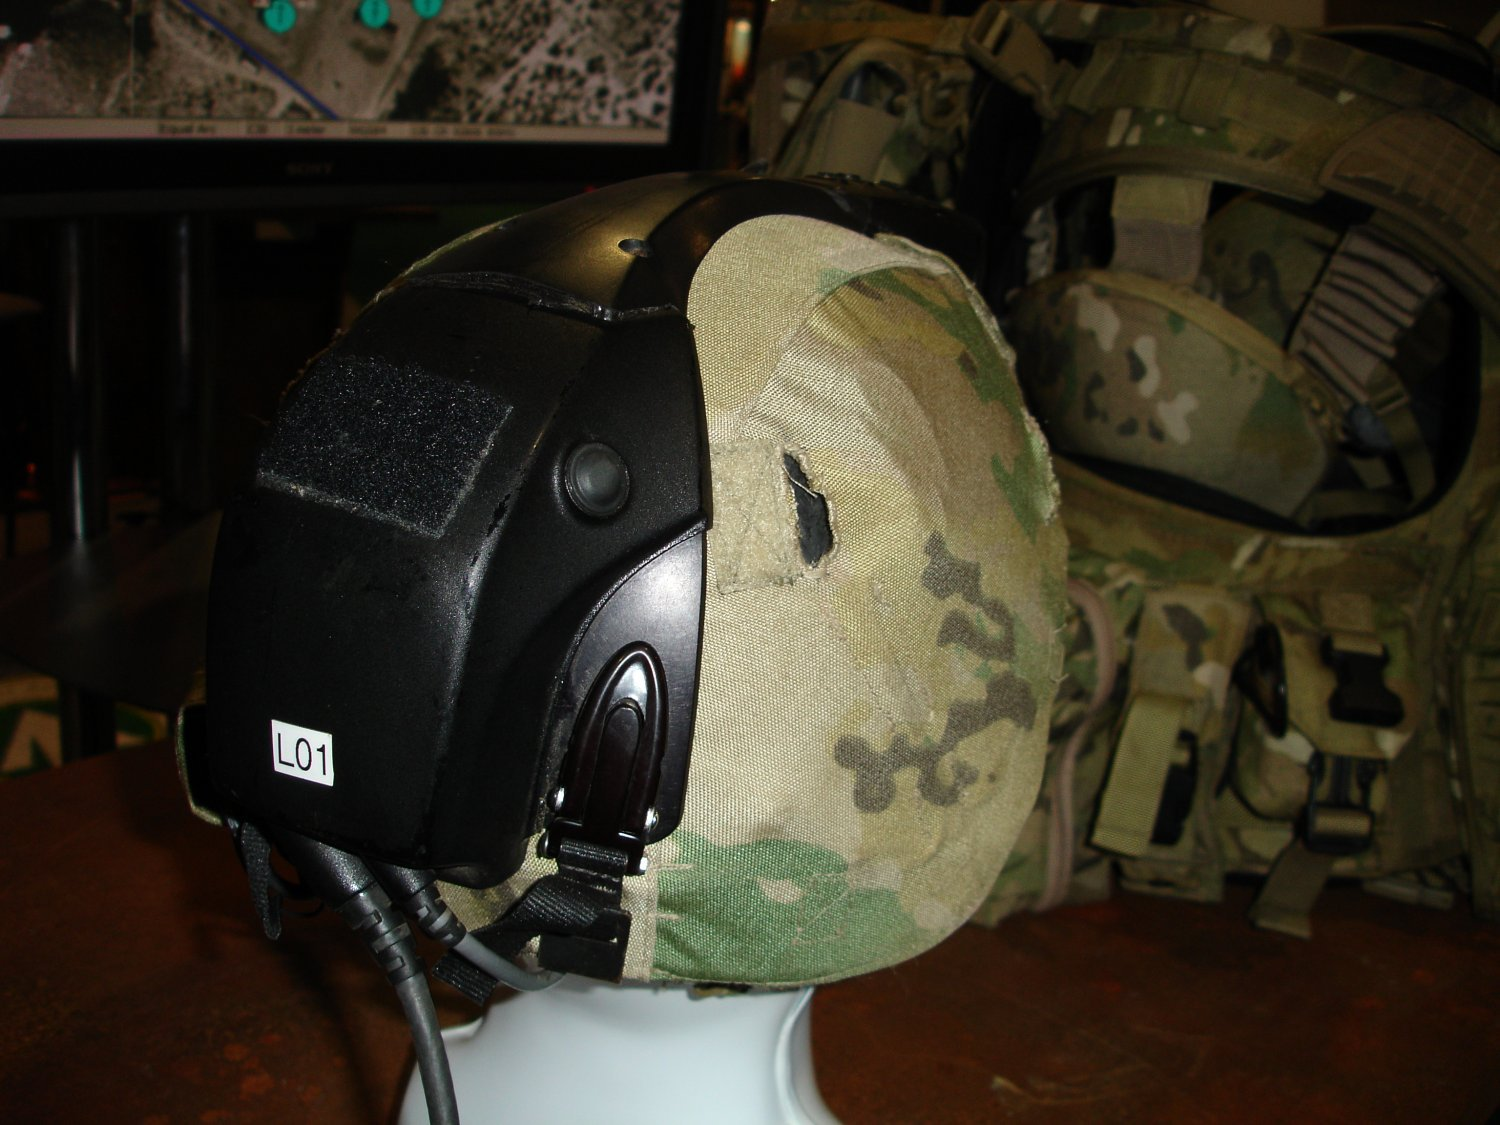 AUSAWinterSymposiumandExhibition2007 FutureForceWarrior RockwellCollinsFusedSensorHMD 3 <!  :en  >Infrared/Night Vision Fusion HMD Developed for Future Force Warrior (FFW)<!  :  >